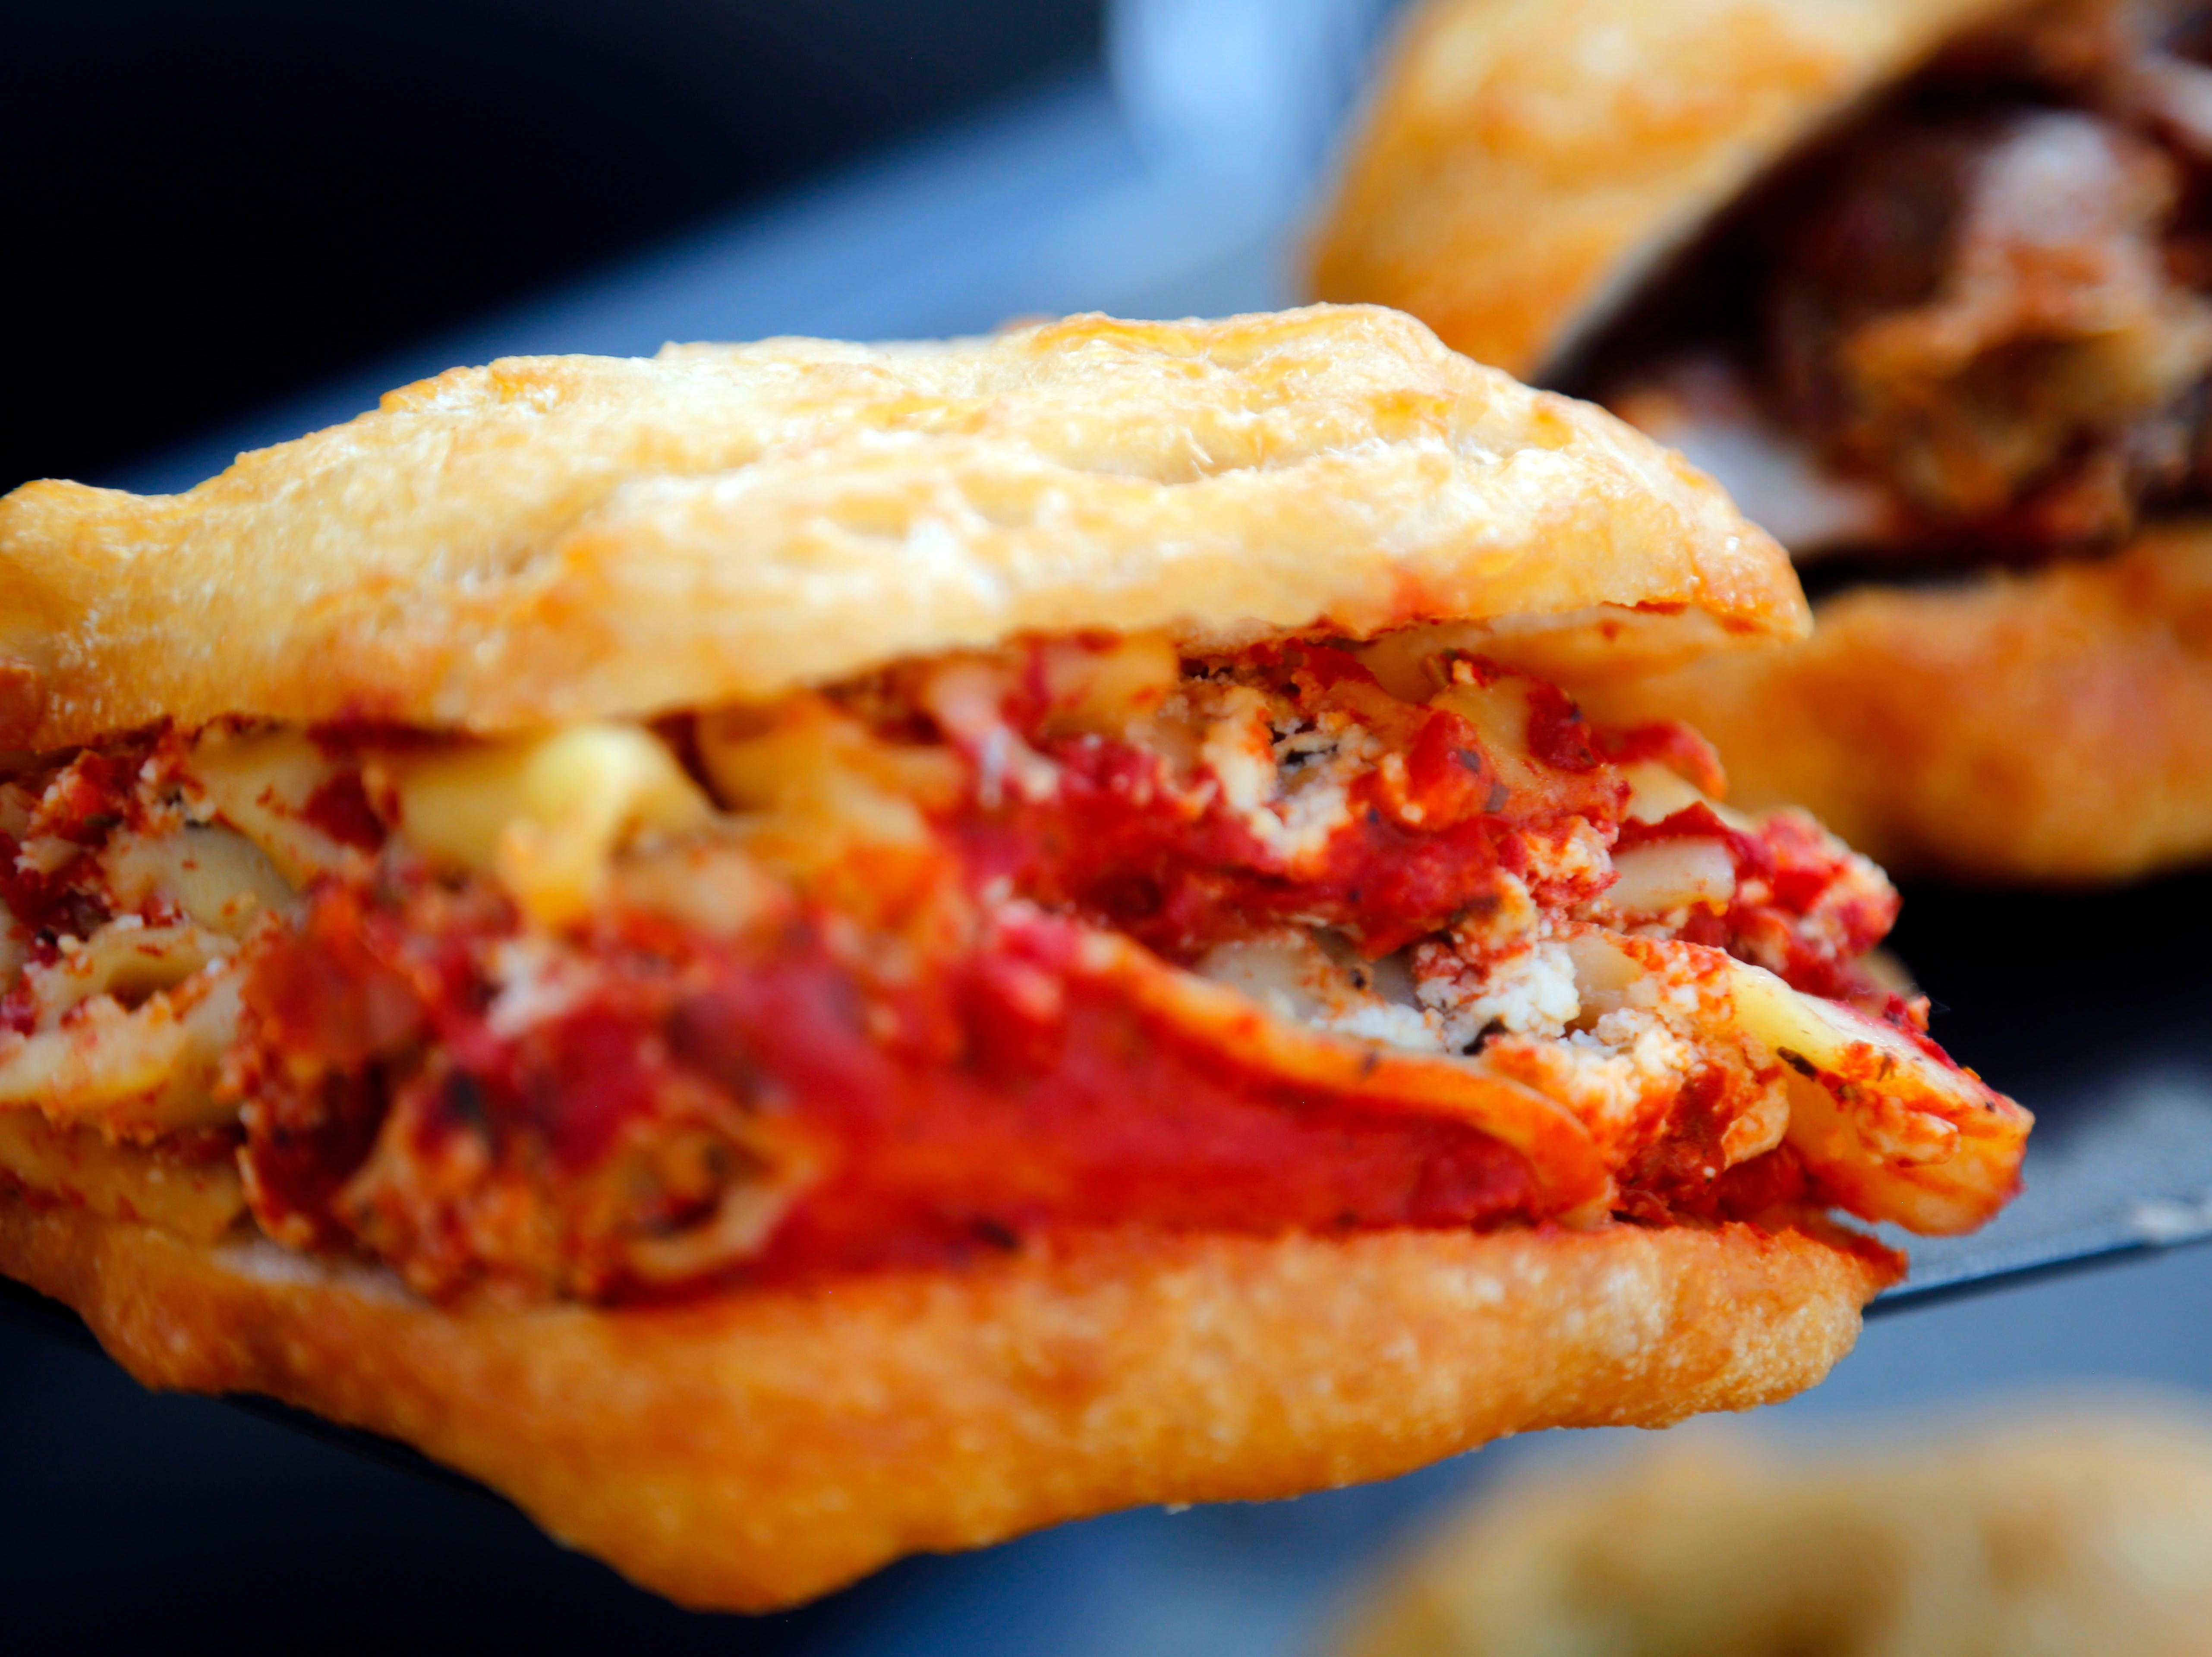 A lasagna sandwich at the Formaro's Stuffed booth at the World Food and Music Festival in Des Moines Sept. 14, 2018.